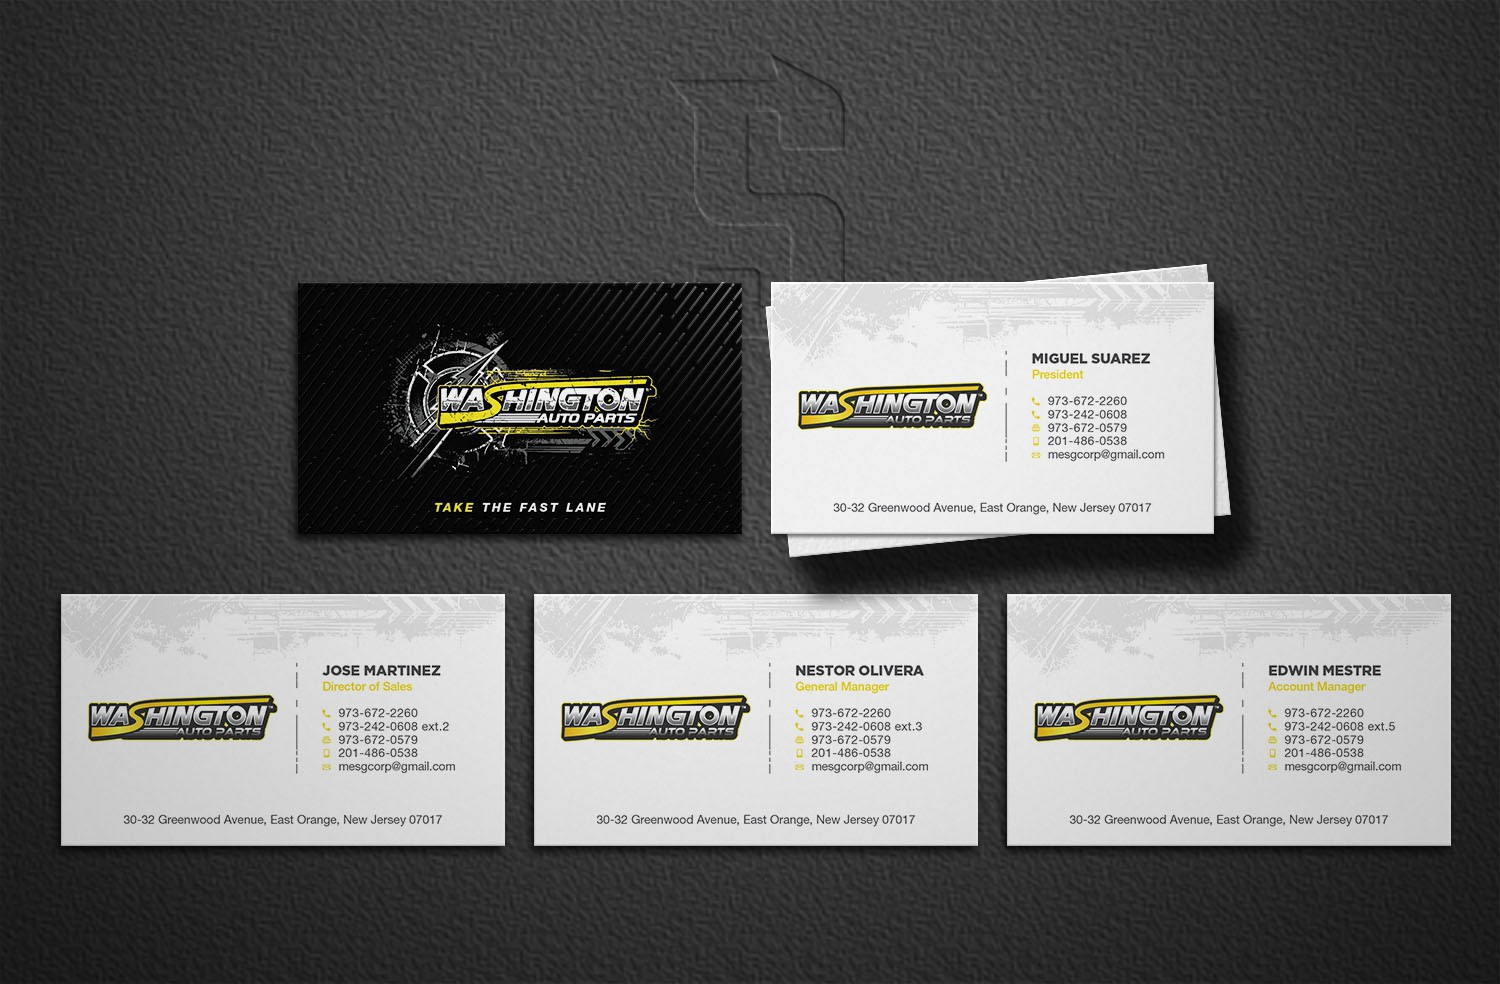 Auto Parts Owner's Business Card - Help Me Sell the Brand